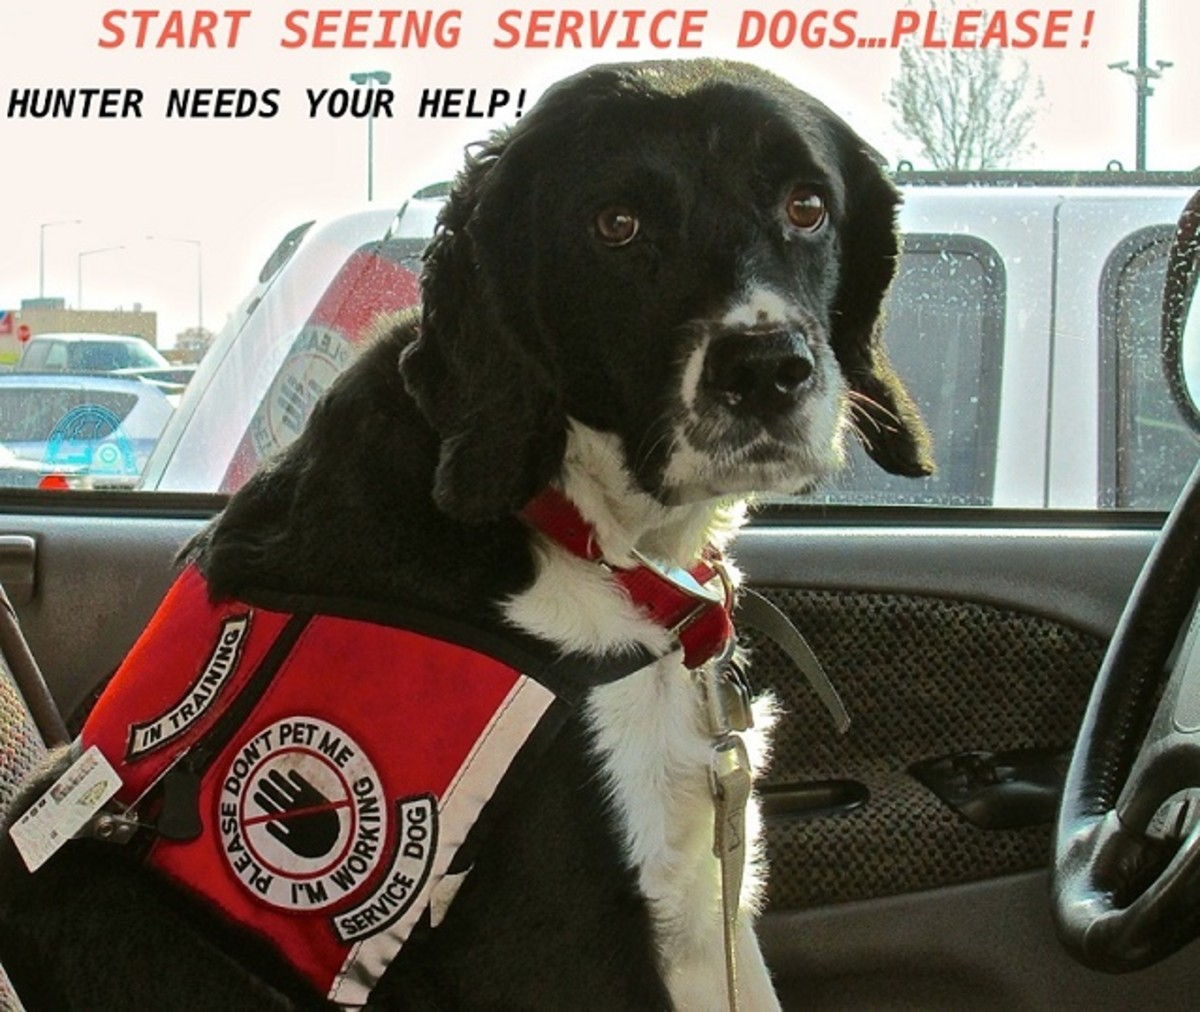 Start Seeing Service Dogs!